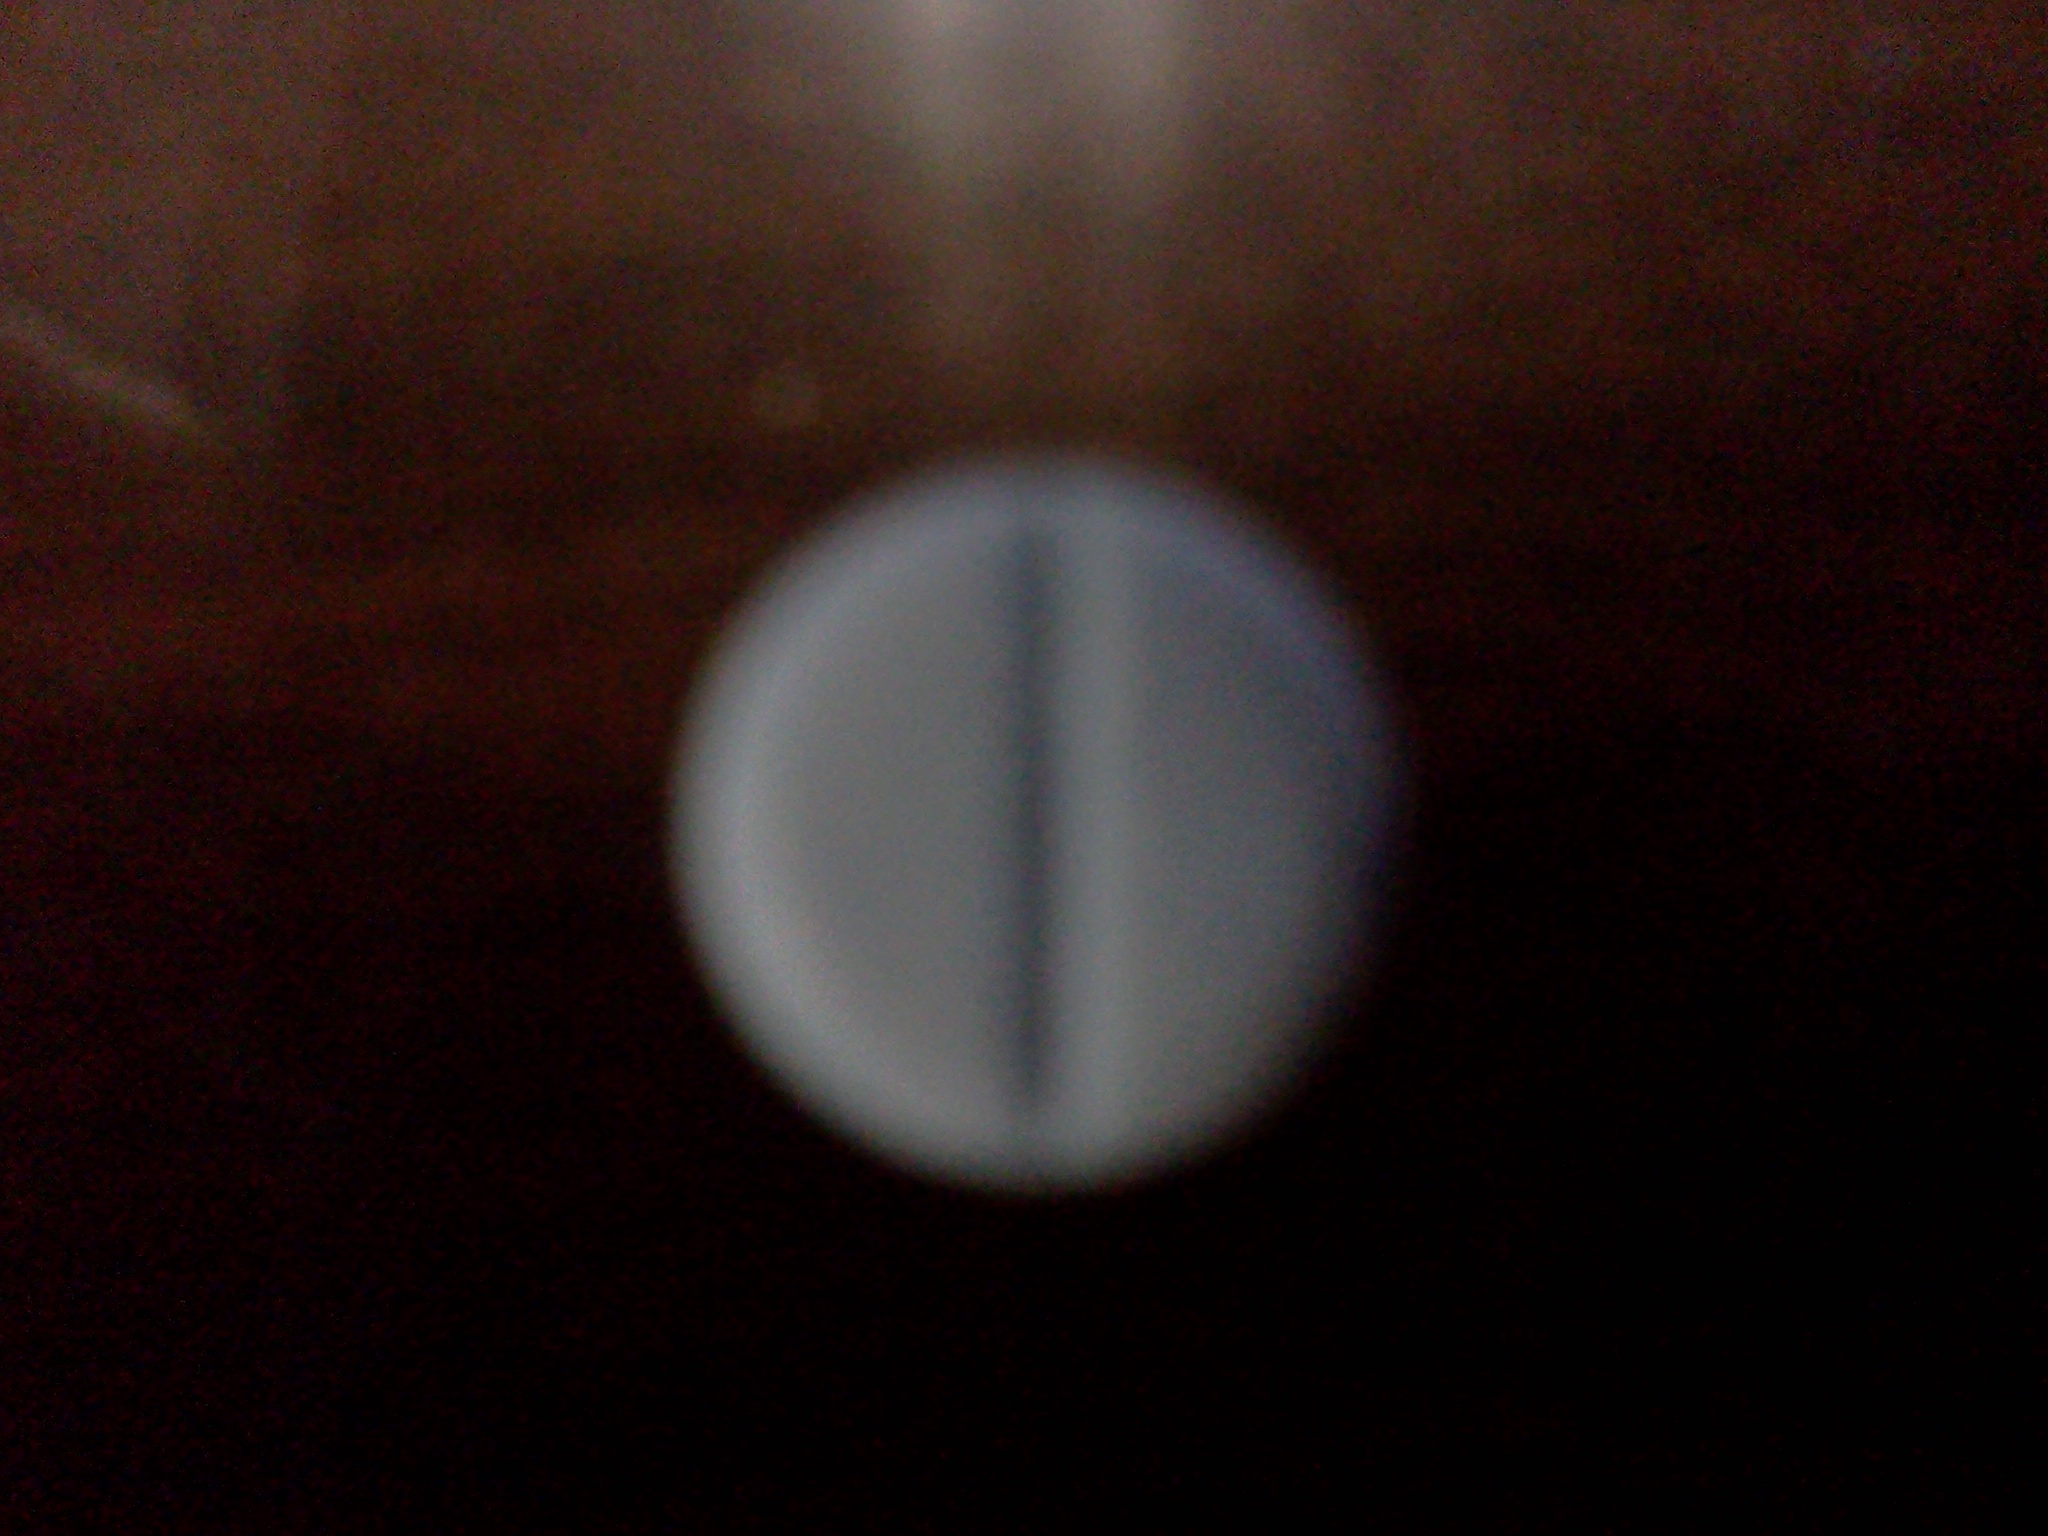 blue capsule with no markings - OnlyOneSearch Results